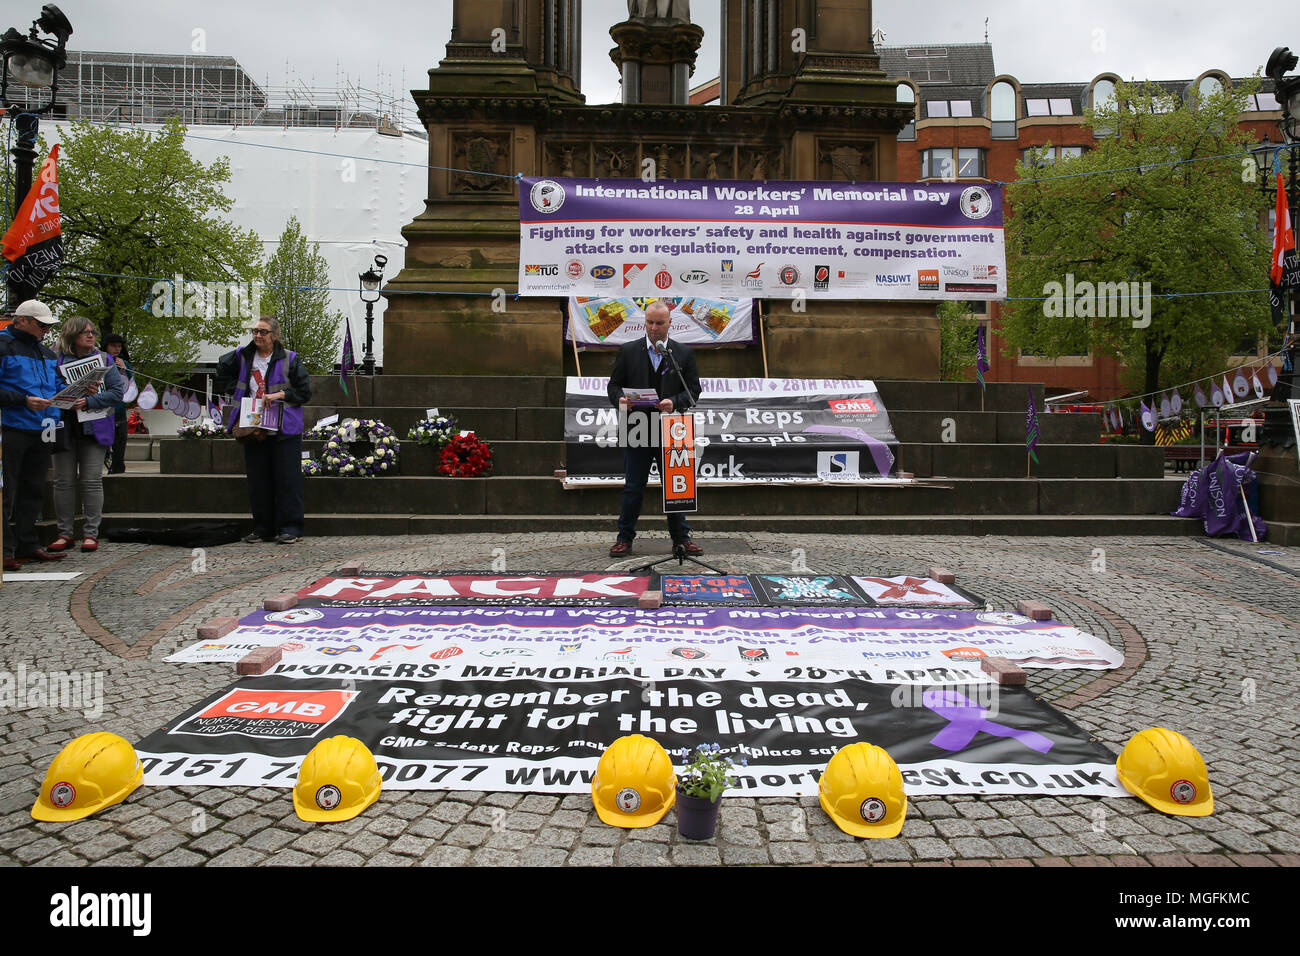 Manchester, UK, 28 April 2018. A banner which reads 'Remember the dead, fight for the living' on the ground next to fire fighters helmets on International Workers Memorial Day, Albert Square, Manchester , 28th April, 2018 (C)Barbara Cook/Alamy Live News - Stock Image